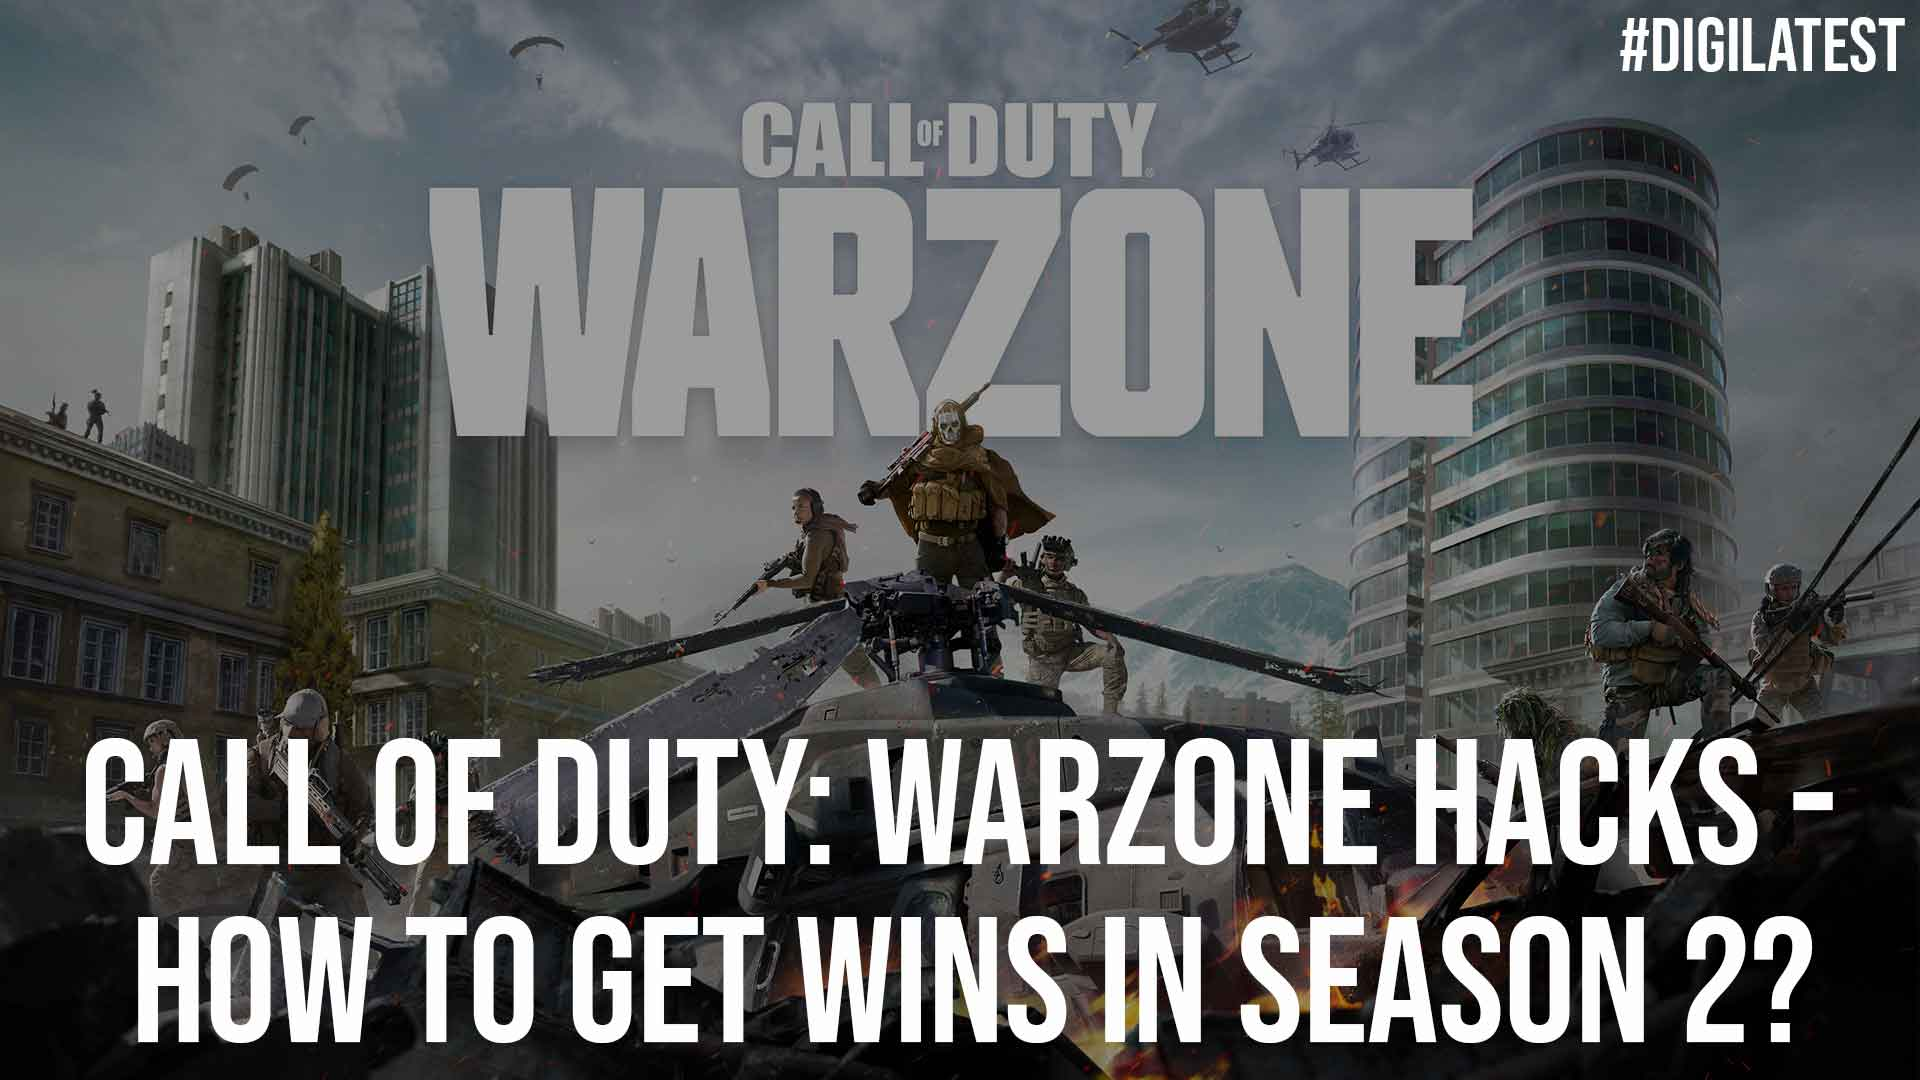 Call of Duty Warzone Hacks How to Get Wins in Season 2